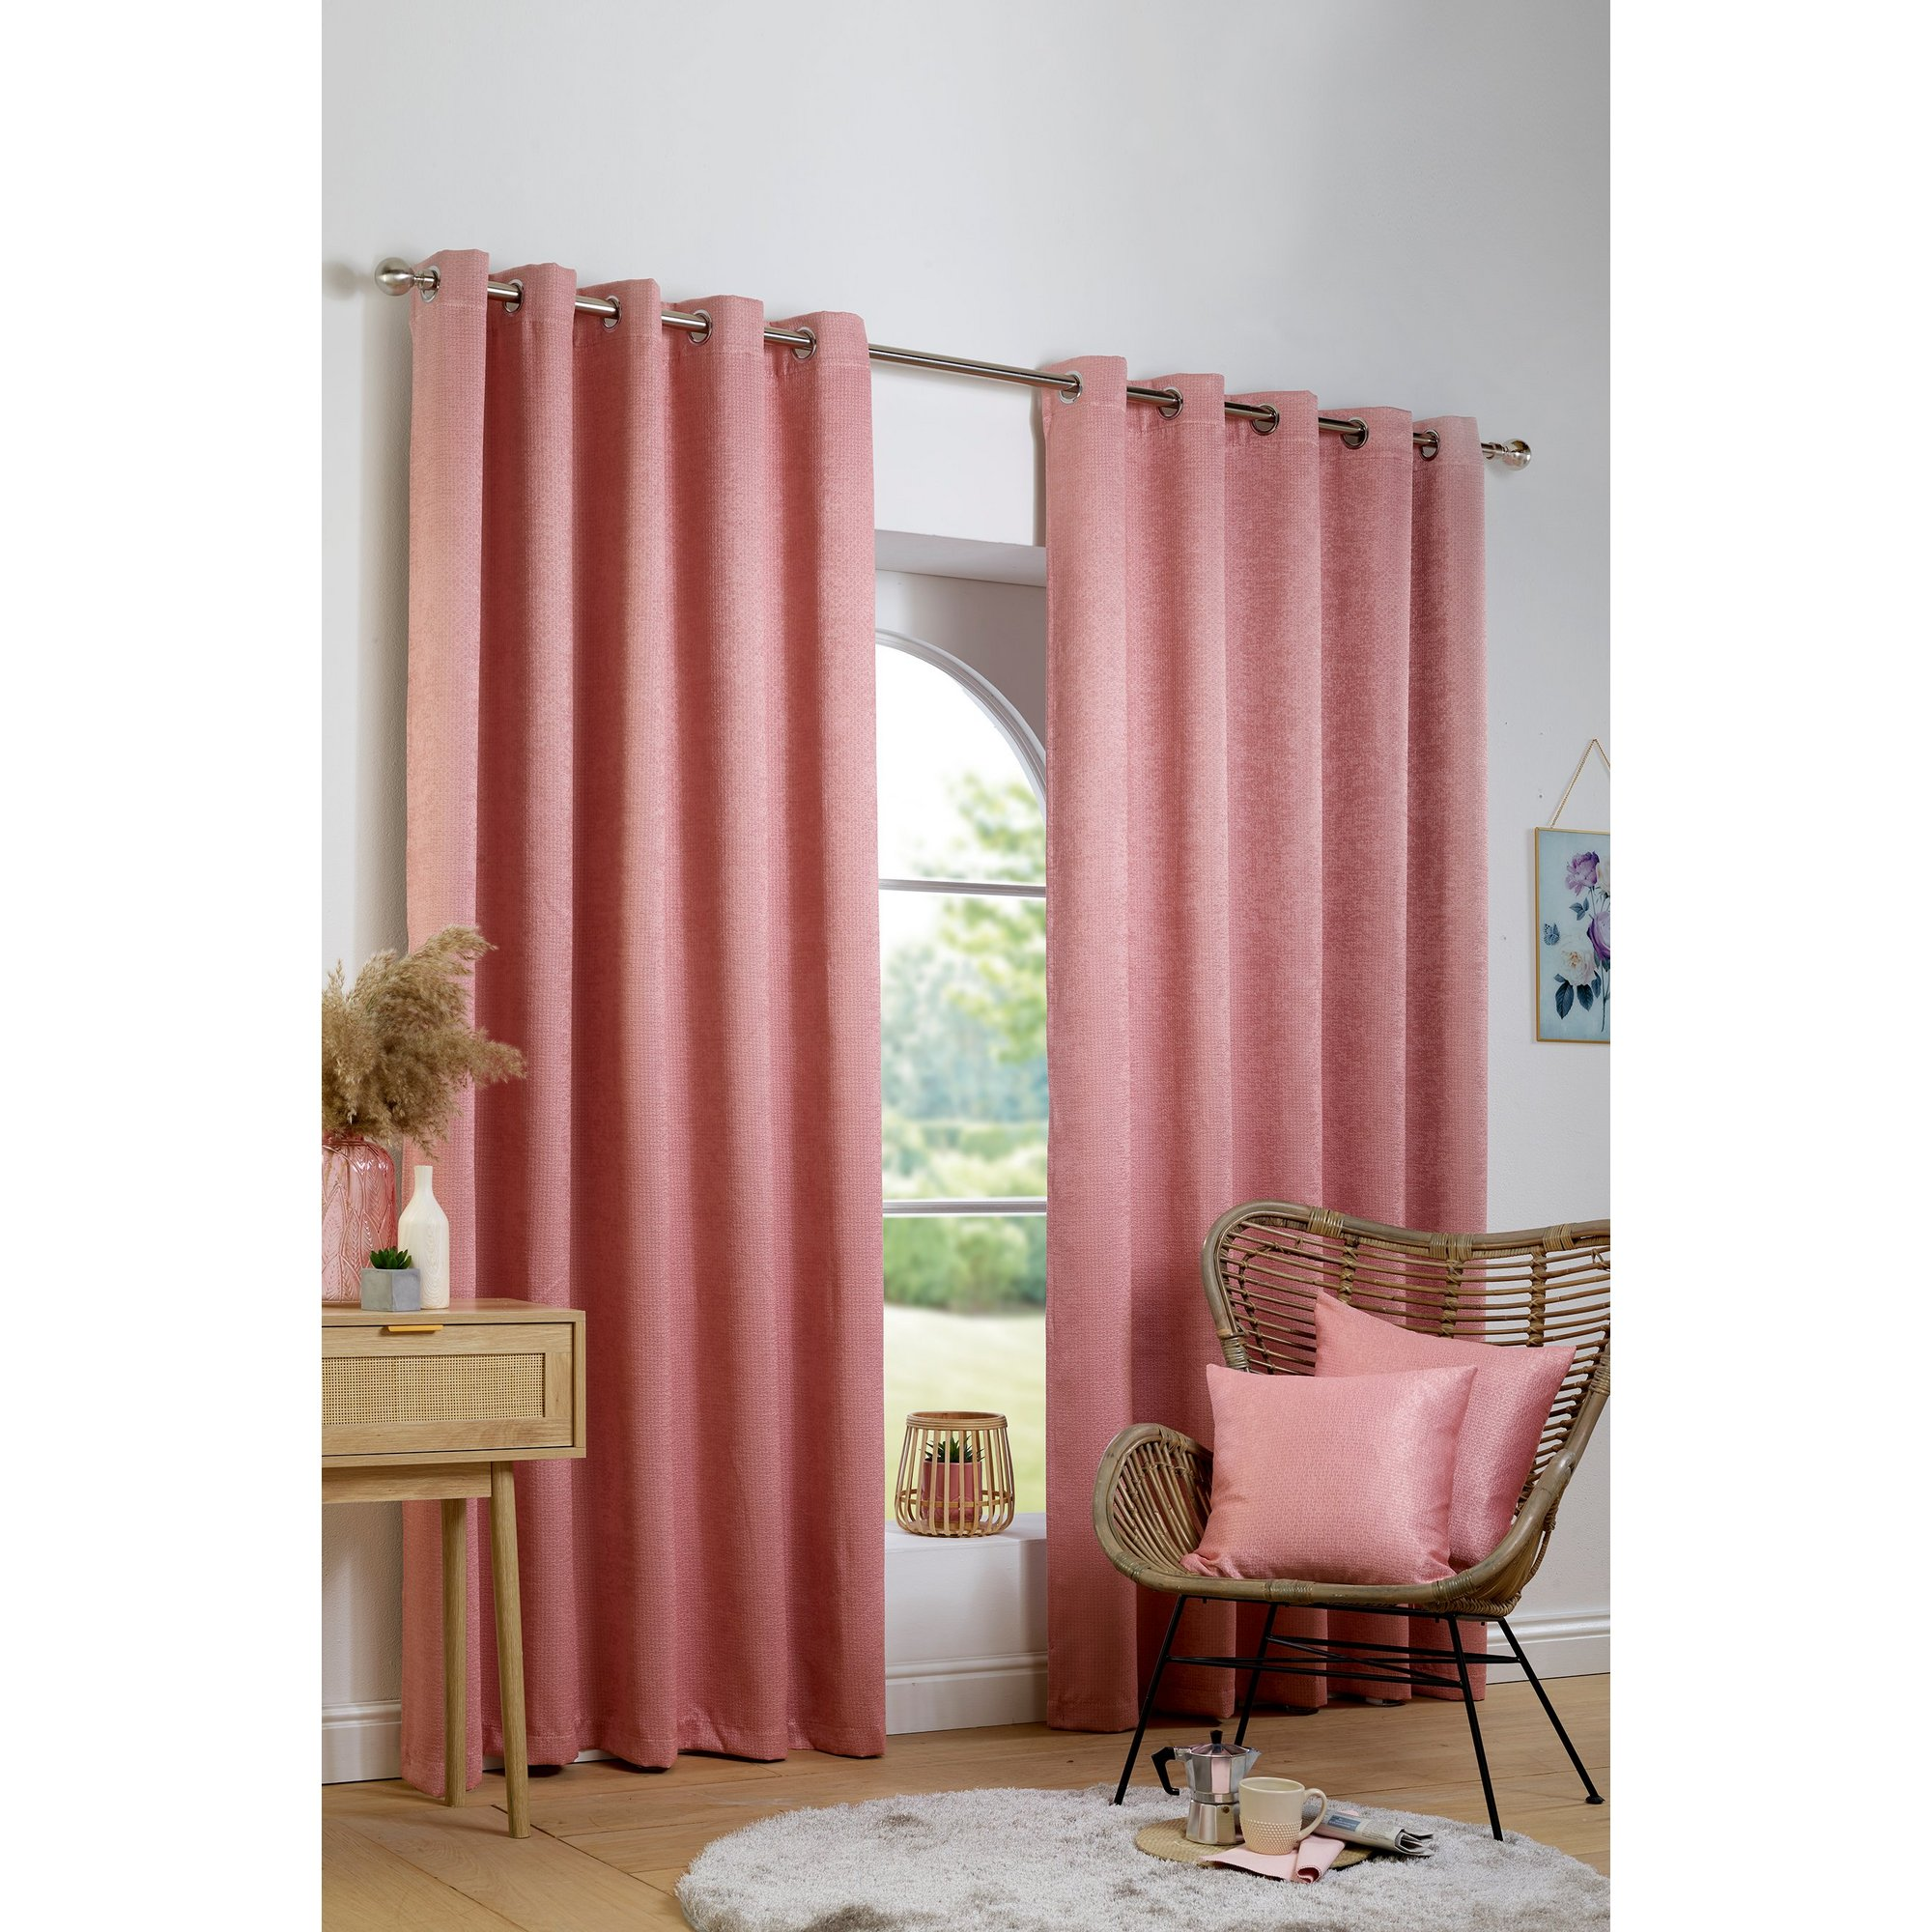 Image of Ambiance Thermal Woven Blockout Eyelet Curtains